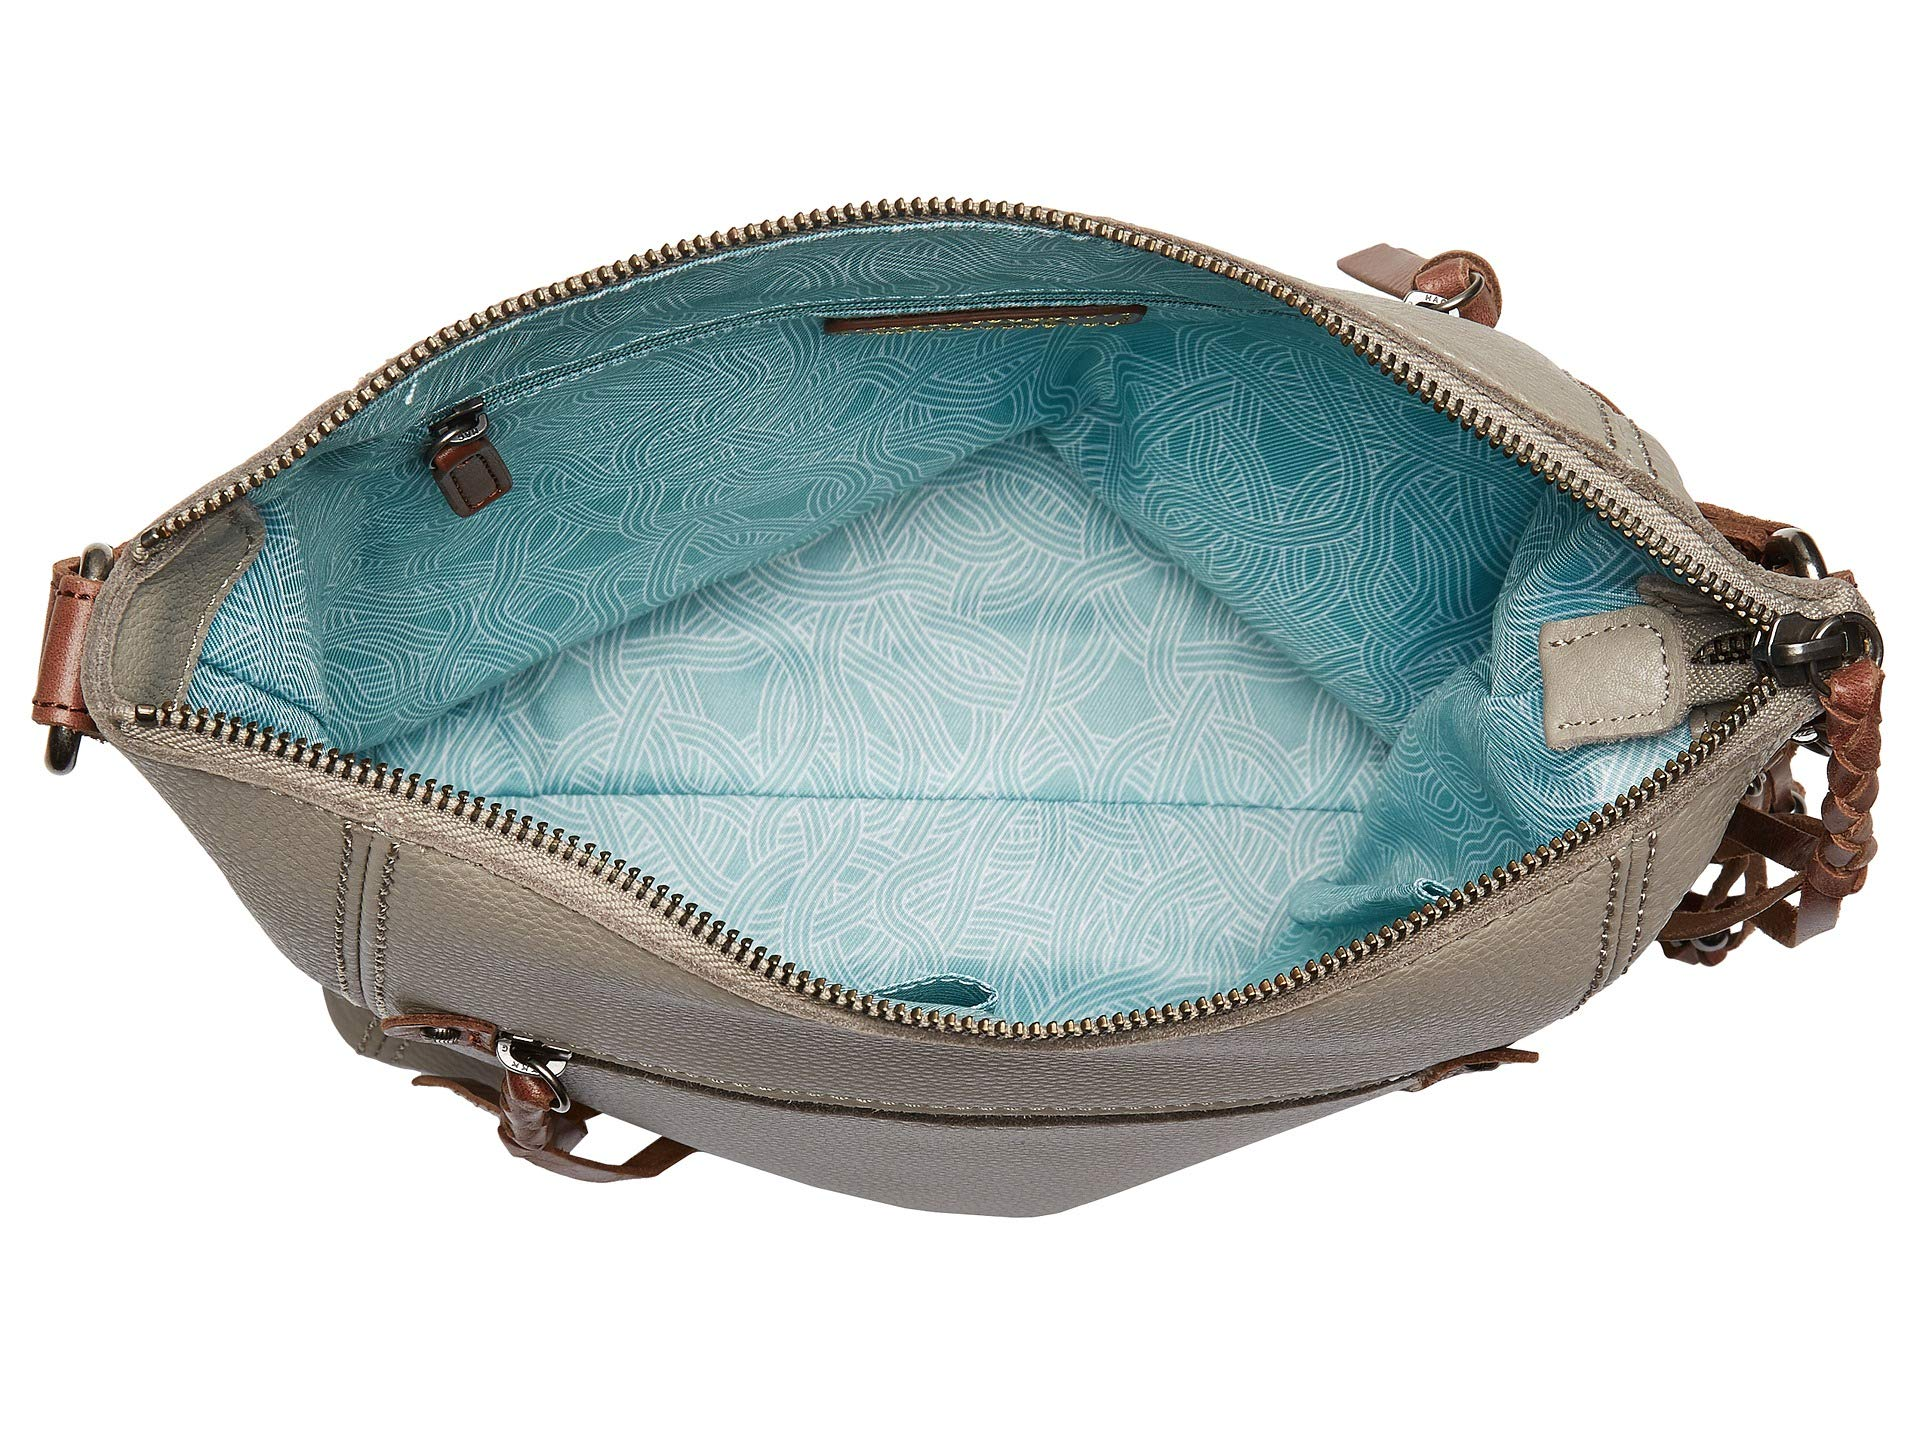 The Crossbody Dove The Dove Ashland Dove Crossbody Crossbody Sak Sak The The Ashland Sak Ashland qqU4w61Z